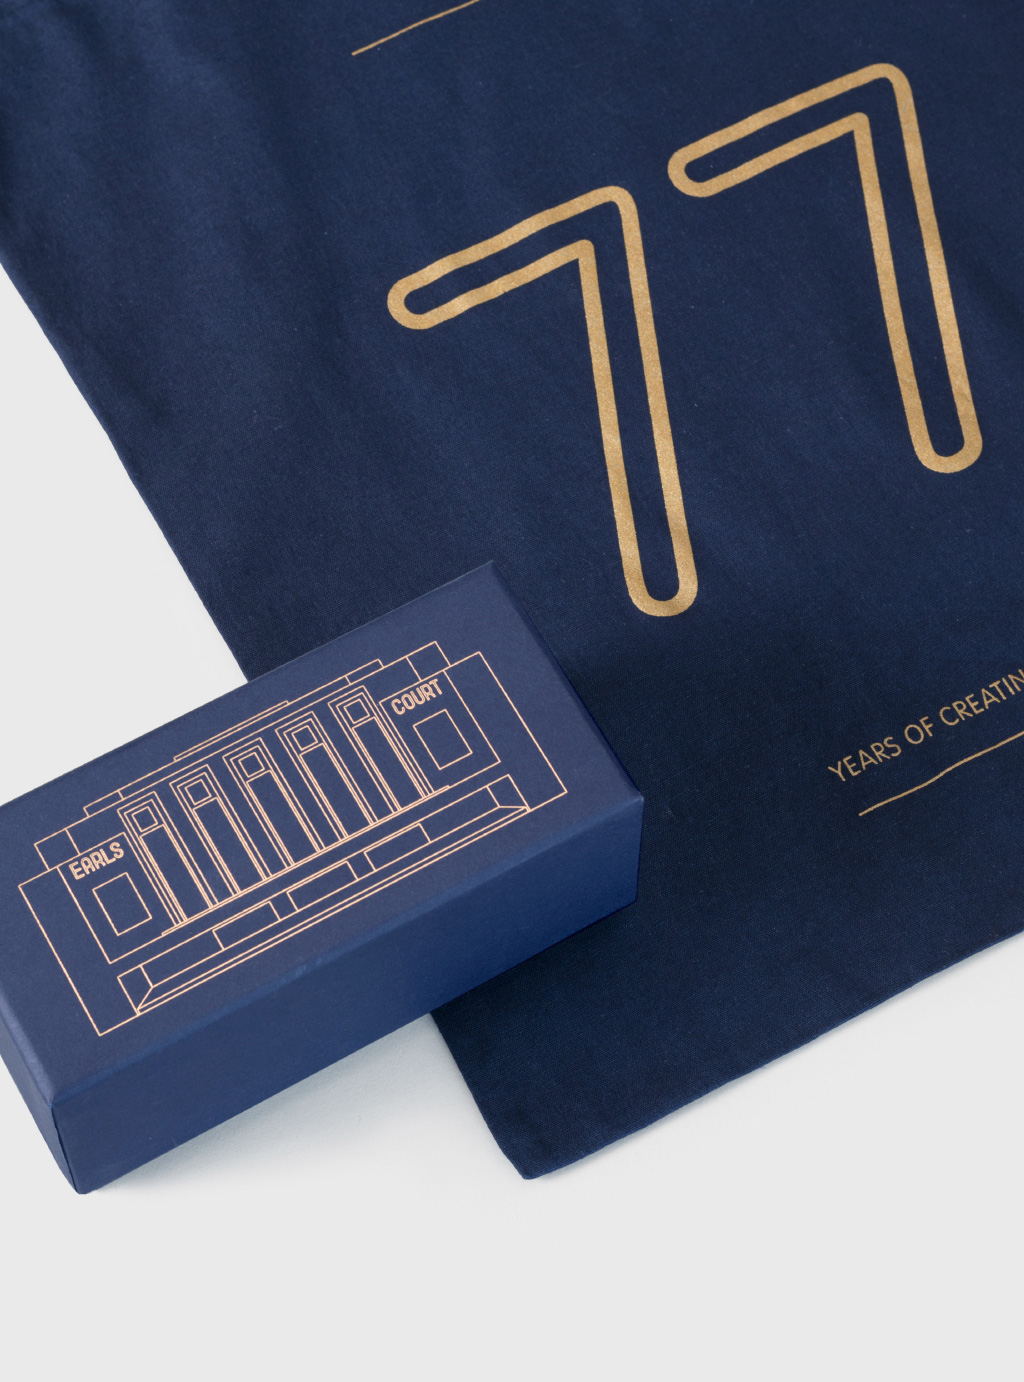 close up on the packaging and bag design for the Earls Court